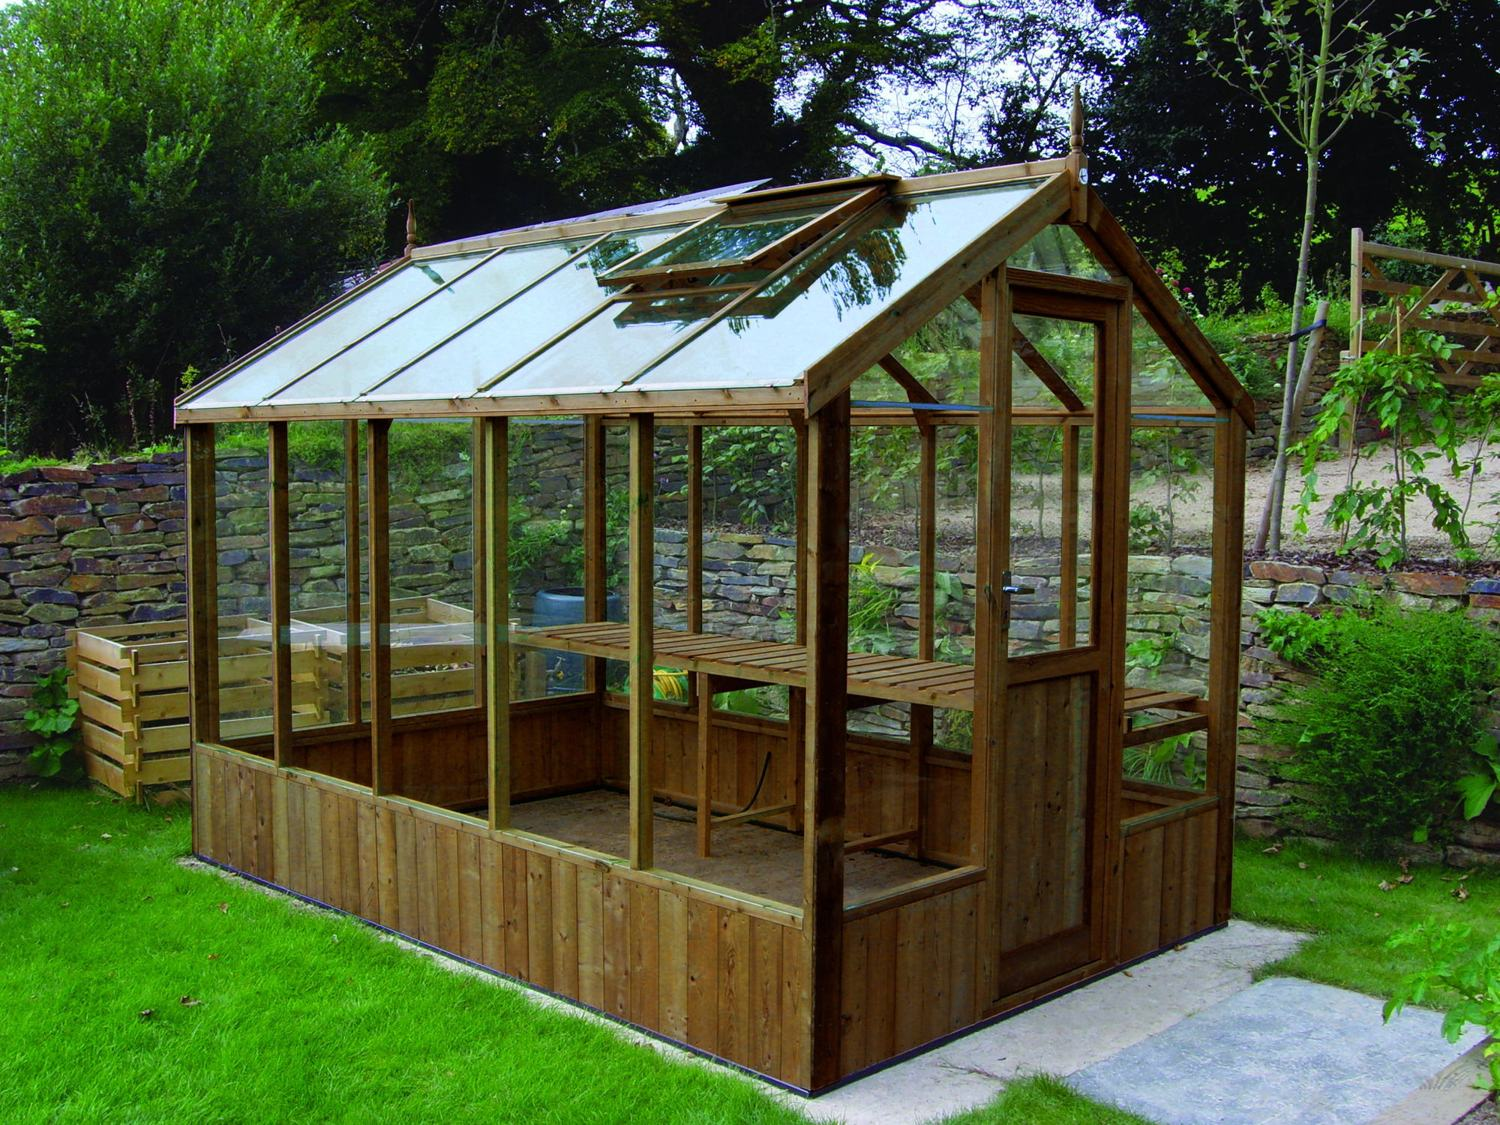 The green house mere - Swallow Kingfisher 6x8 Wooden Greenhouse